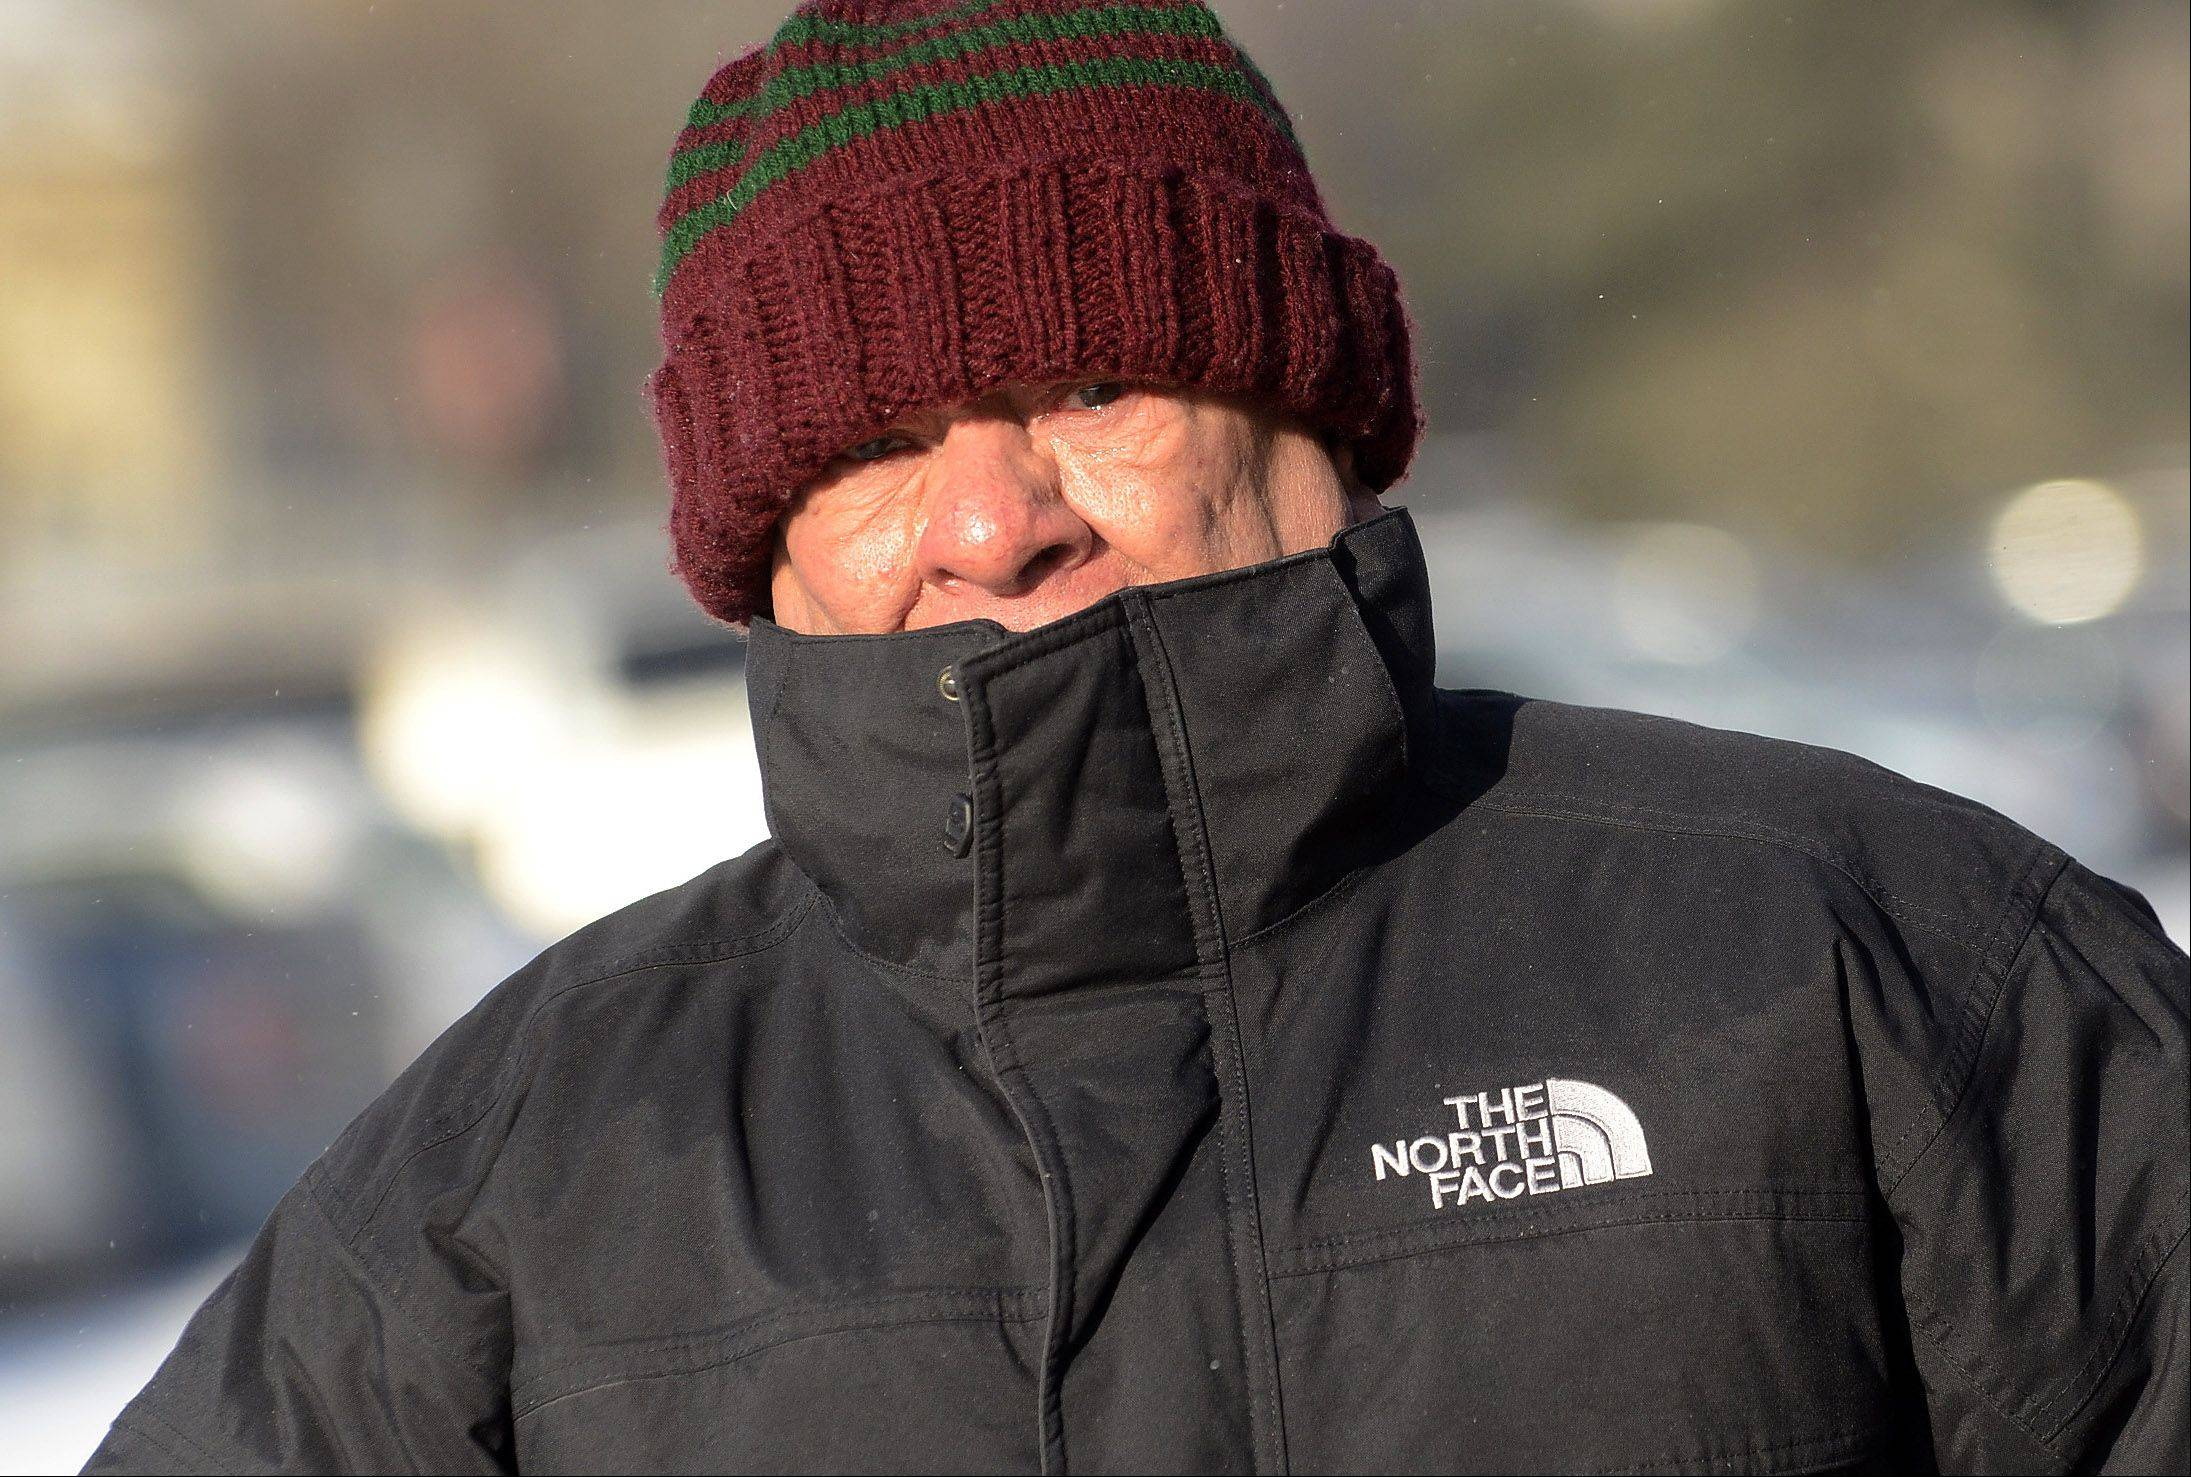 Bob Chwedyk/bchwedyk@dailyherald.comAlfredo Faries of Barrington bundles up at the Barrington Metra station Thursday morning.